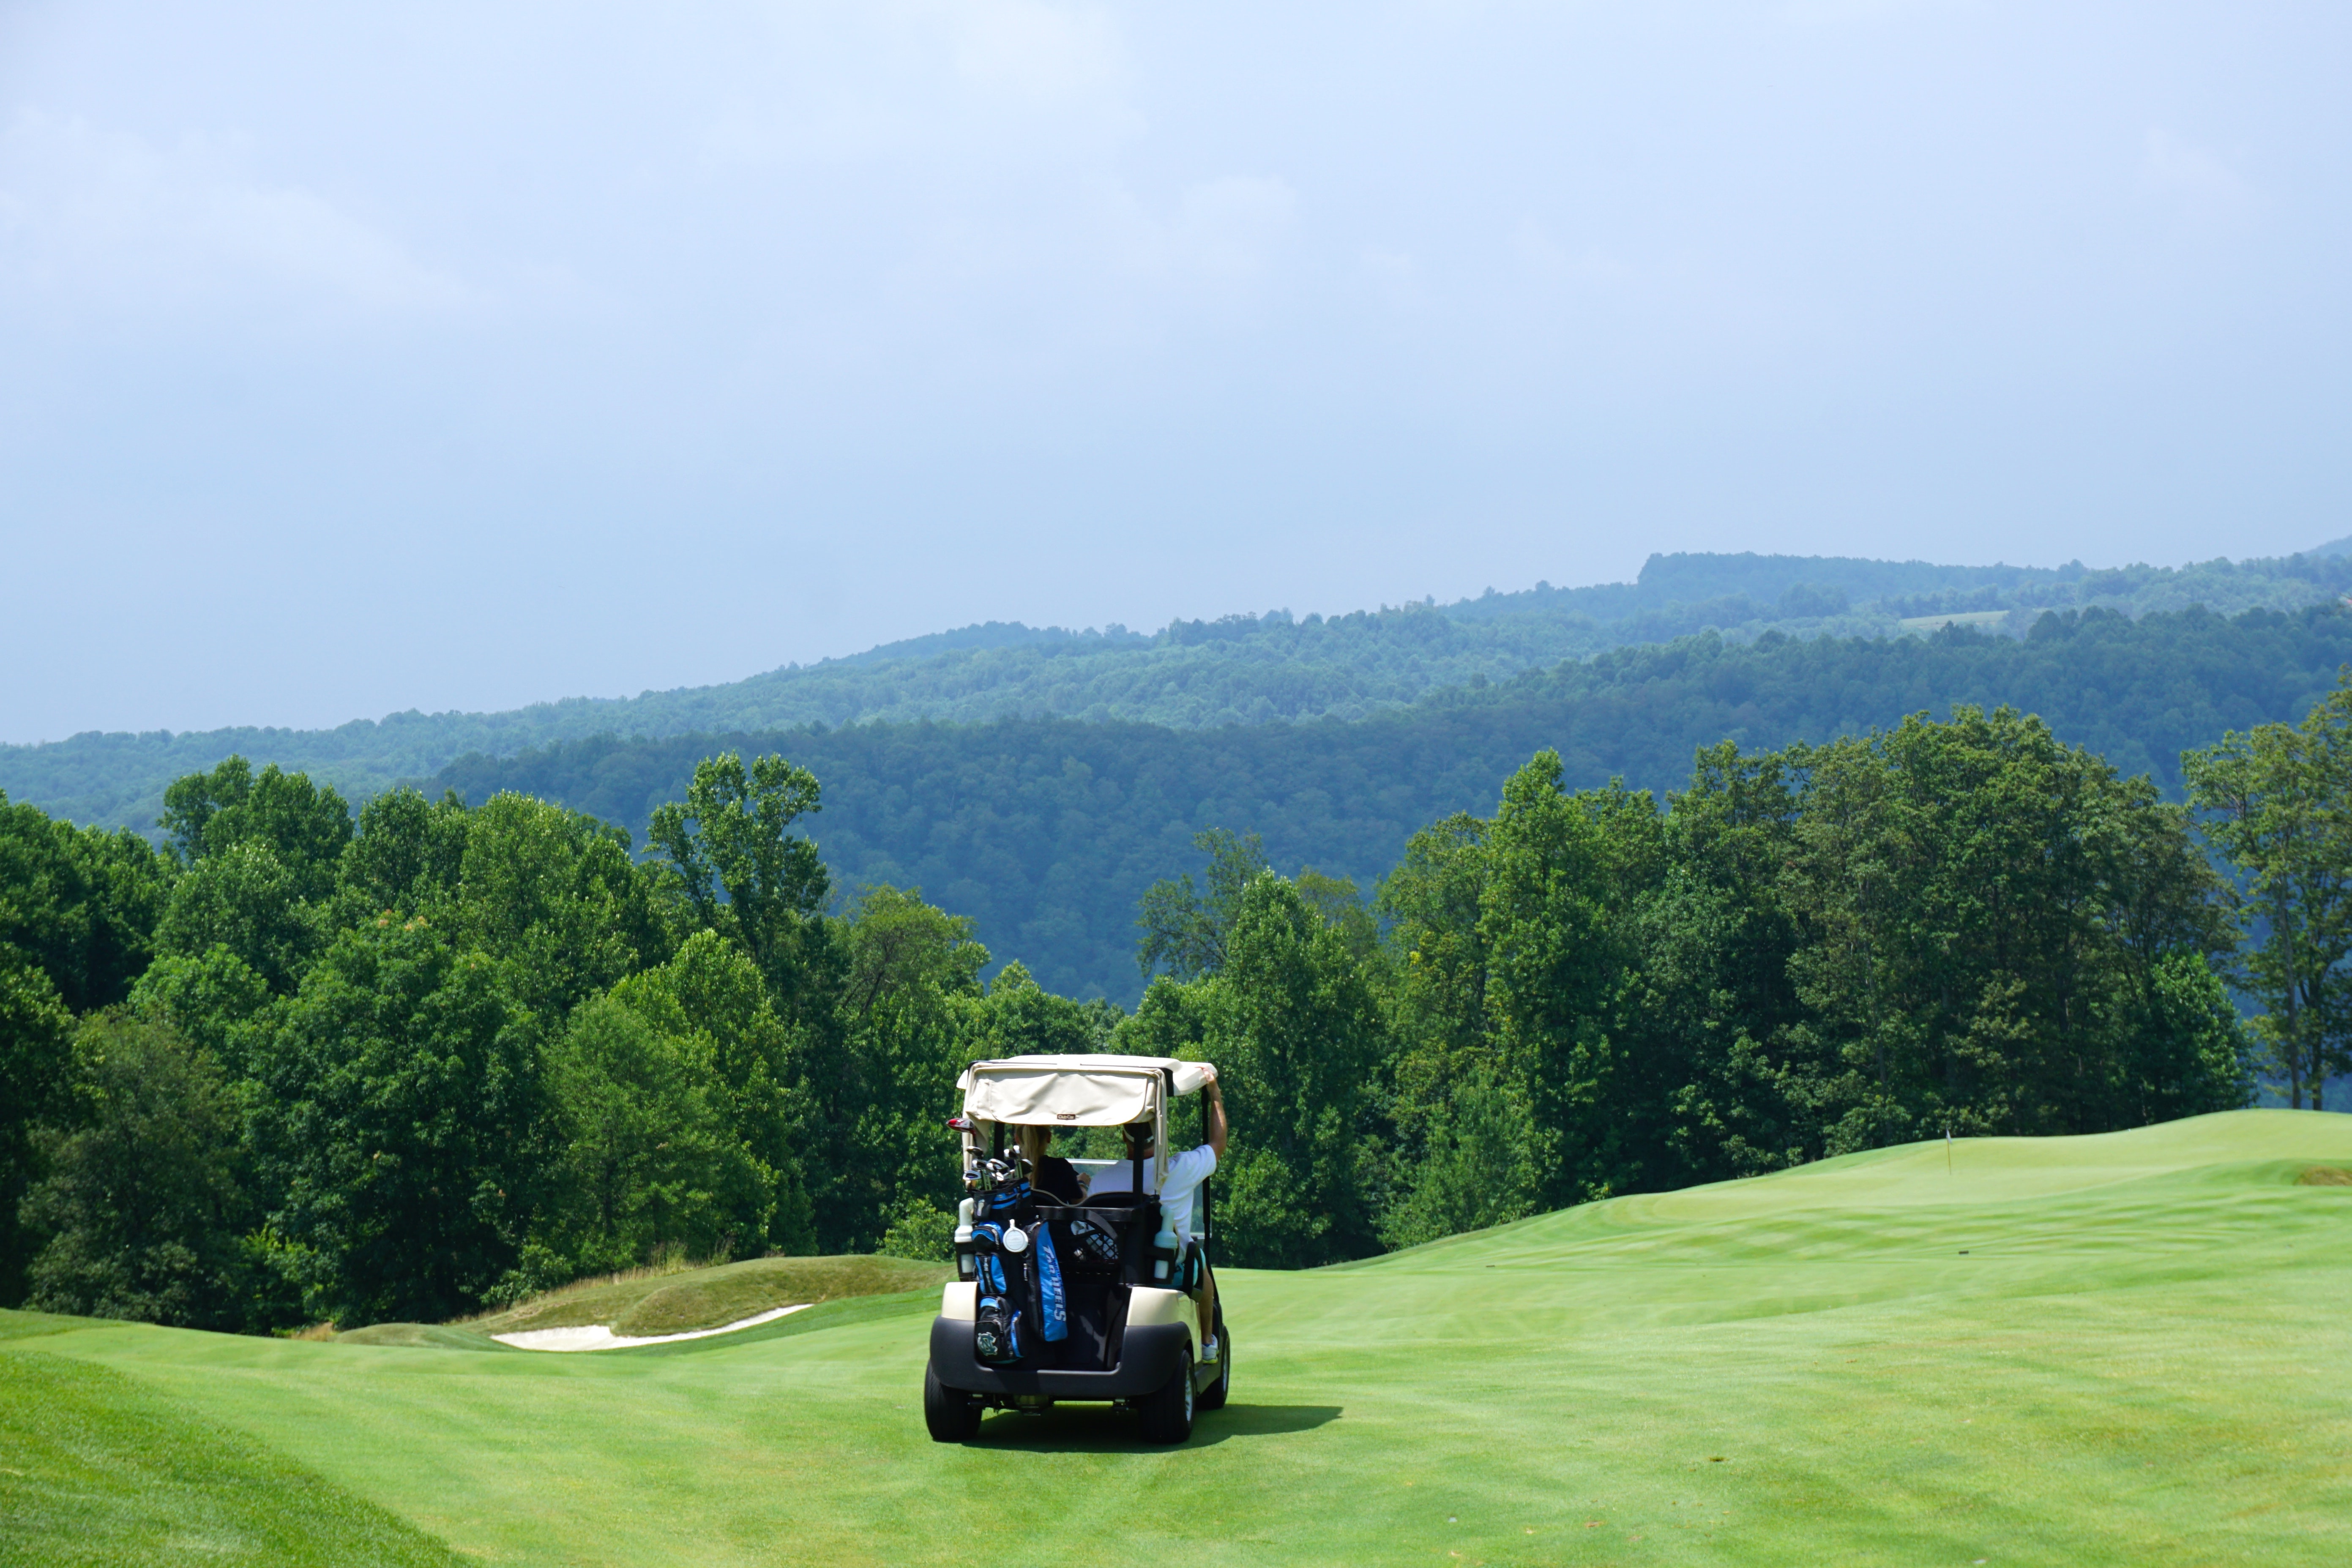 Golf cart drives on Highland Course grass in front of green trees and hills